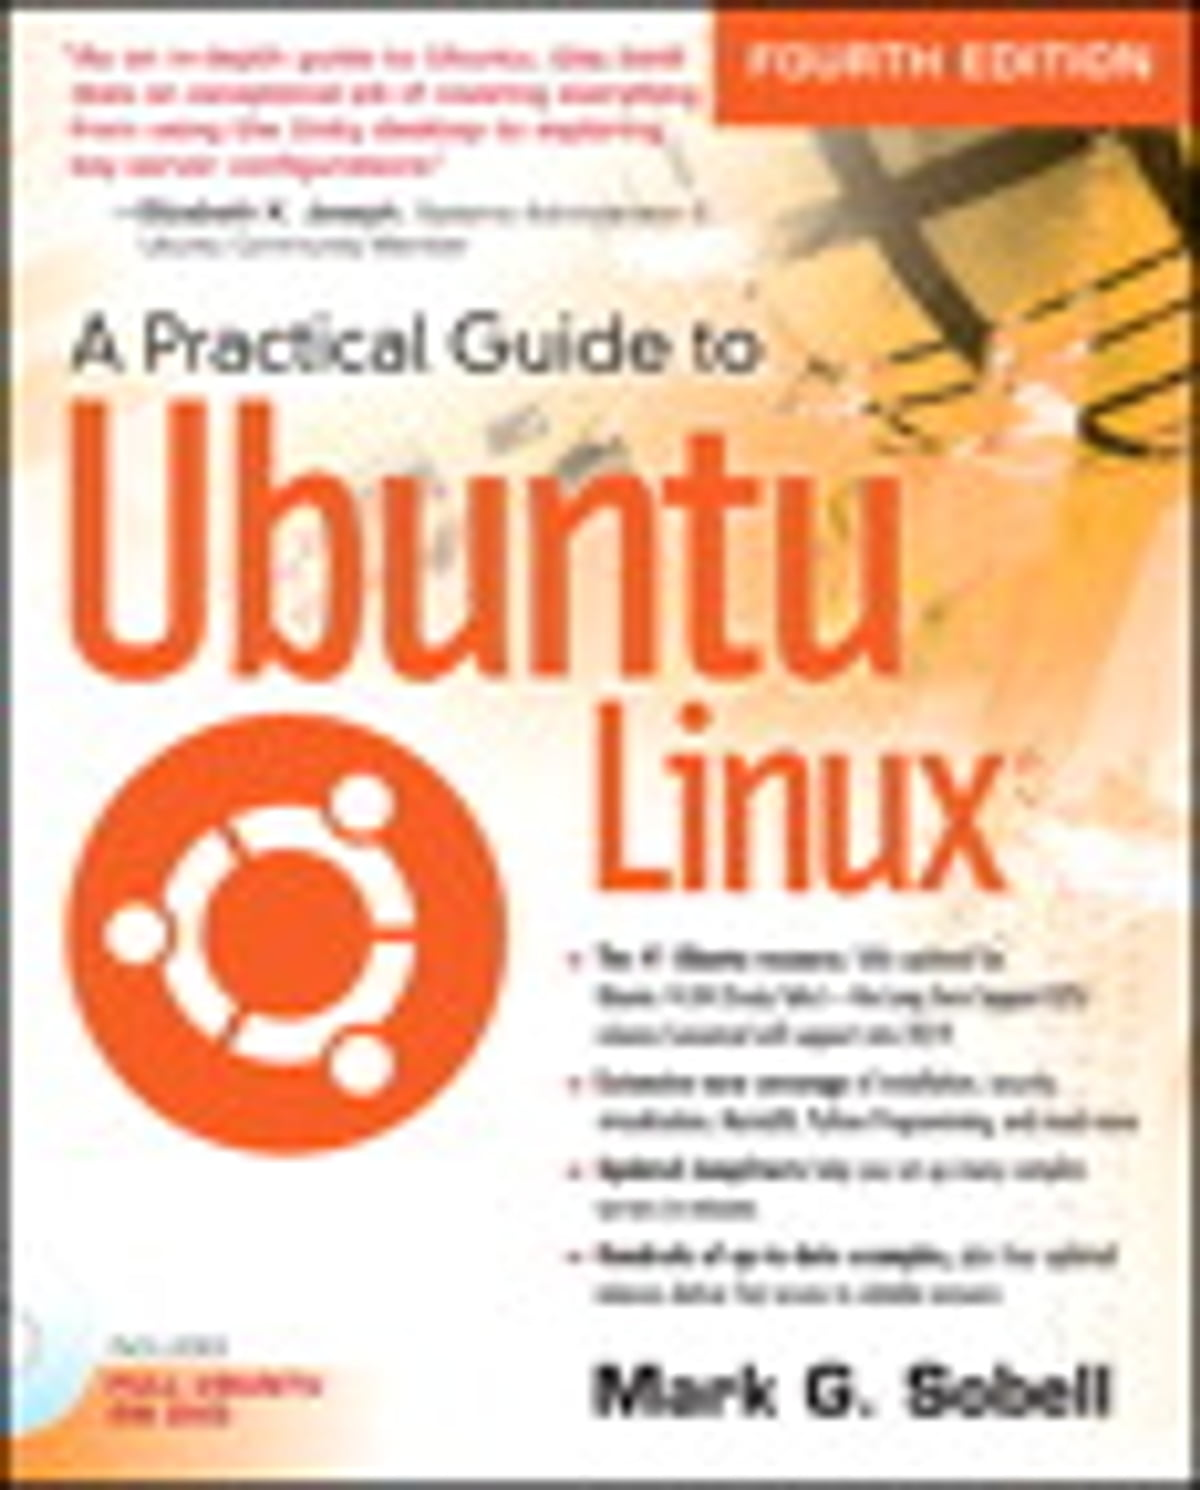 A Practical Guide to Ubuntu Linux eBook by Mark G. Sobell - 9780133927351 |  Rakuten Kobo